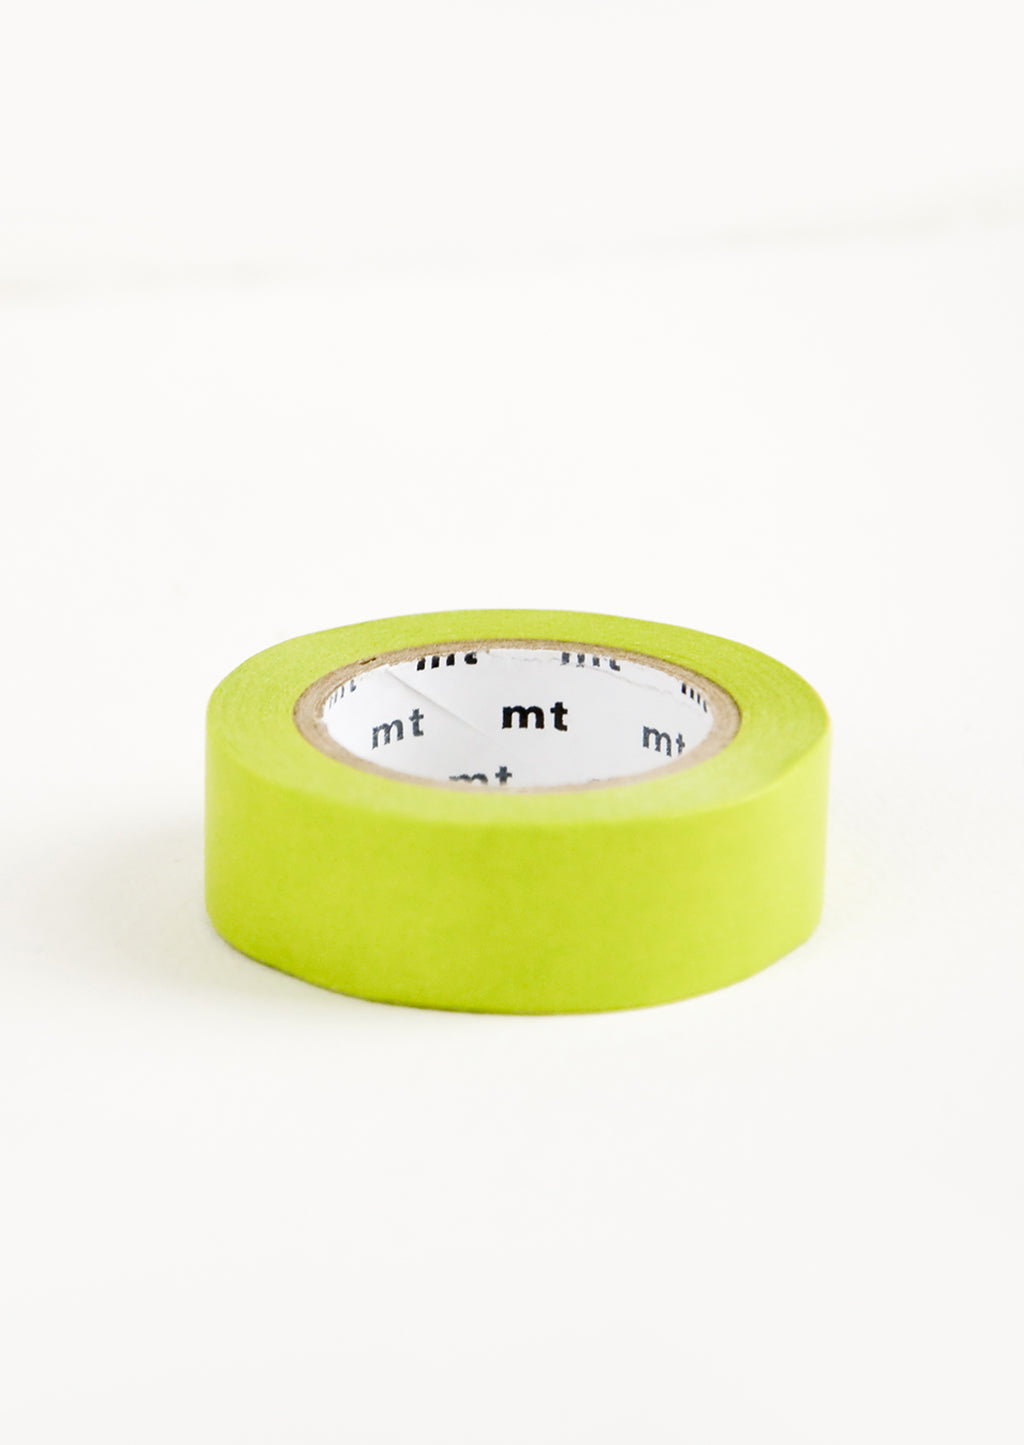 Sapling Green: A roll of washi tape in solid sapling green.